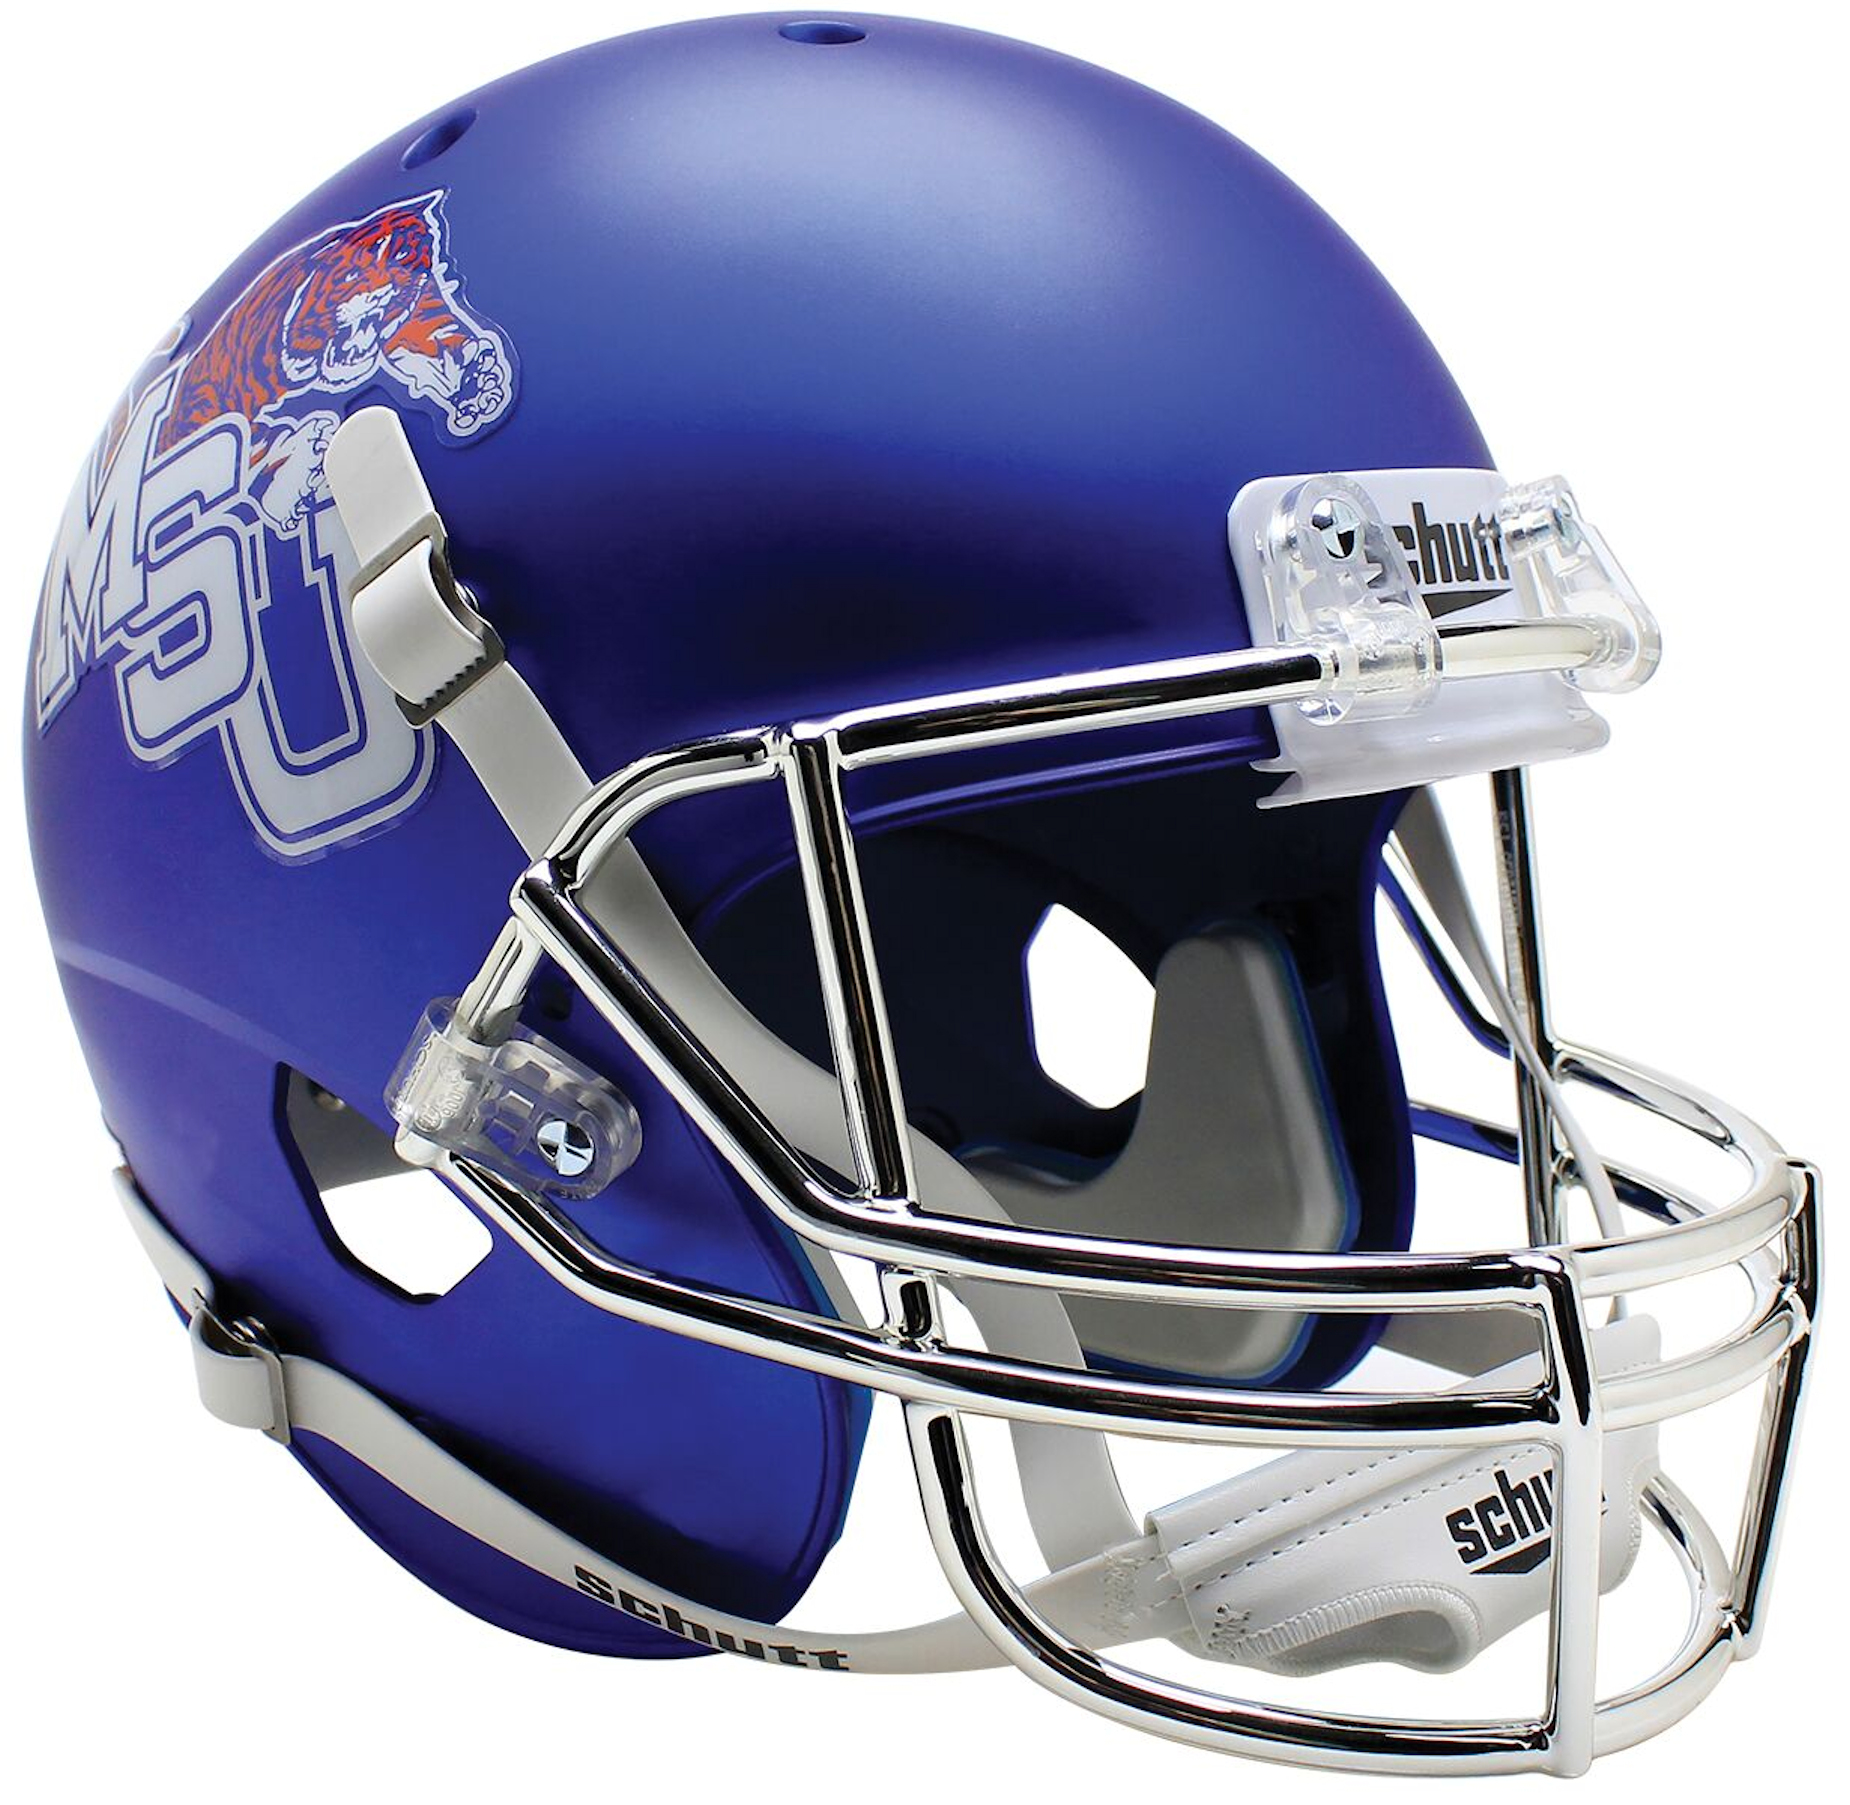 Memphis Tigers Miniature Football Helmet Desk Caddy <B>Satin Blue</B>